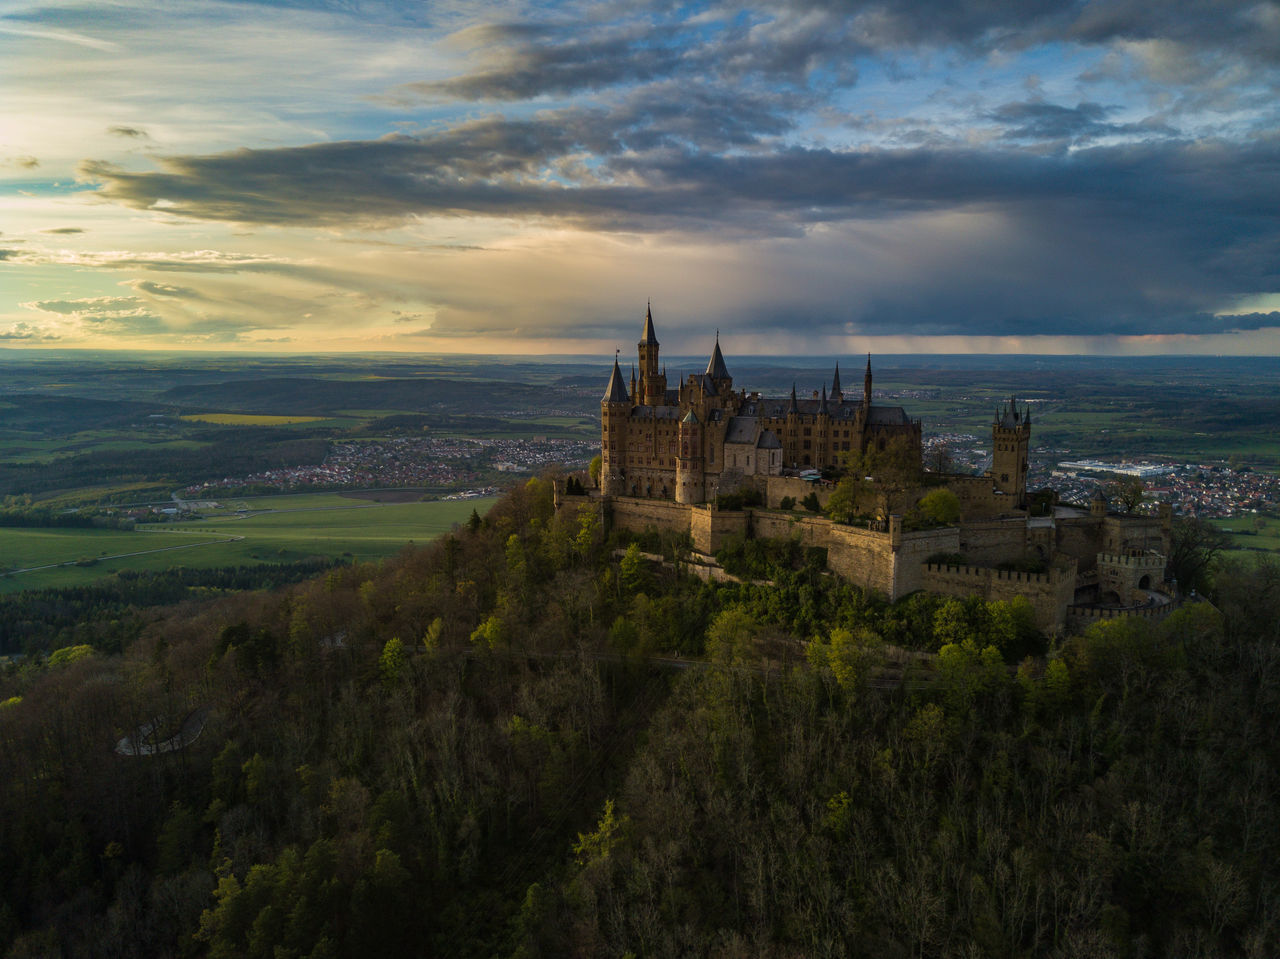 This place is real! Architecture Beauty In Nature Building Exterior Built Structure Castle Castle Cloud - Sky Dramatic Sky Drone  Dronephotography Fairytale  Fort Germany History Landscape Landscape_Collection Nature Outdoors Sky Sunset Travel Travel Destinations Warm